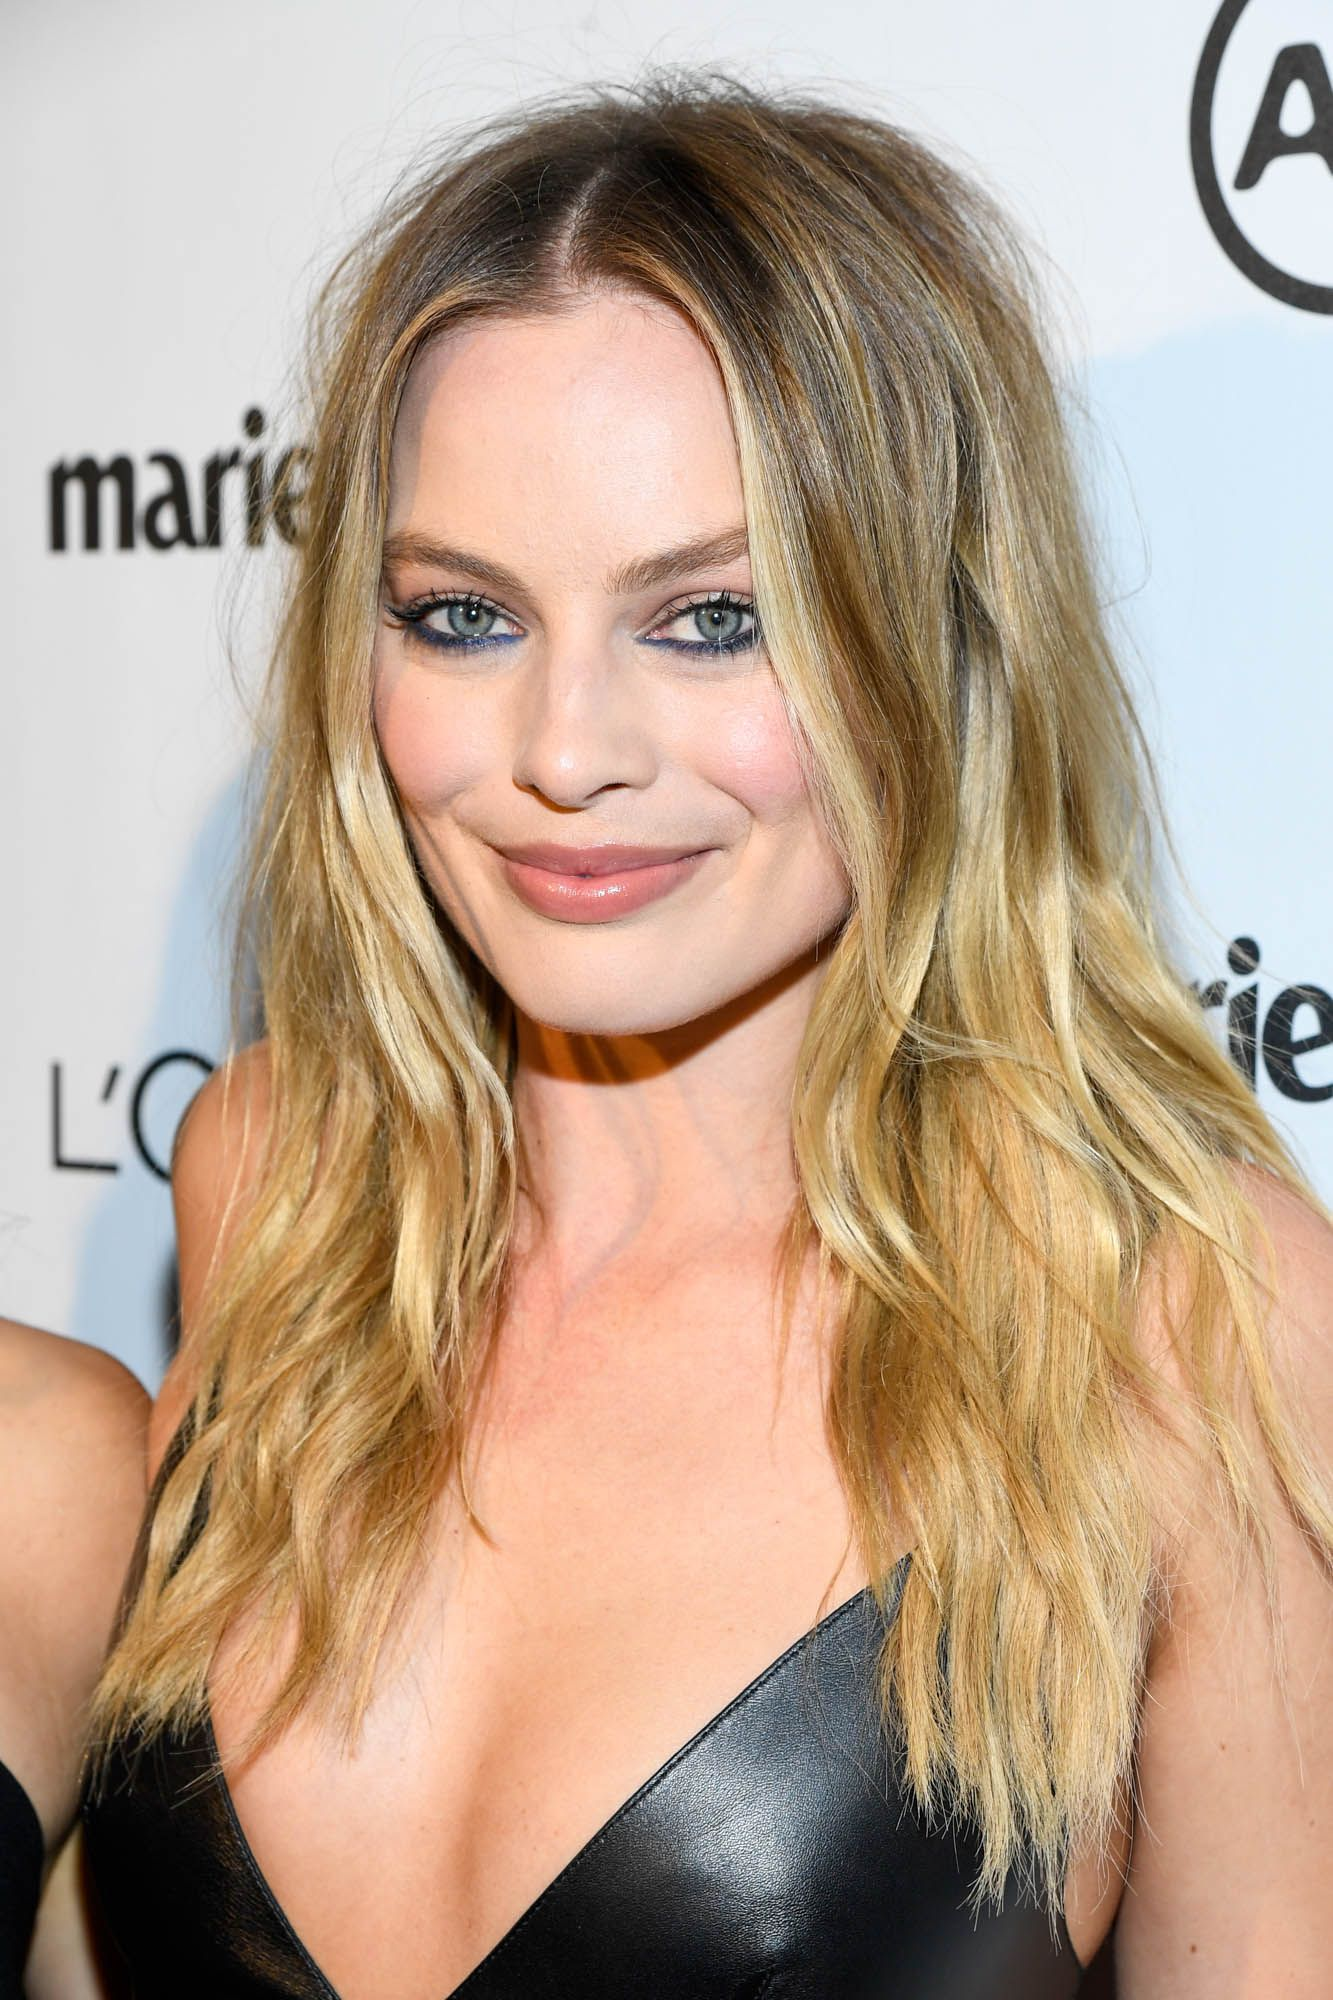 Best blonde hair colors and shades of 2017 celebrity blonde best blonde hair colors and shades of 2017 celebrity blonde hairstyles urmus Images